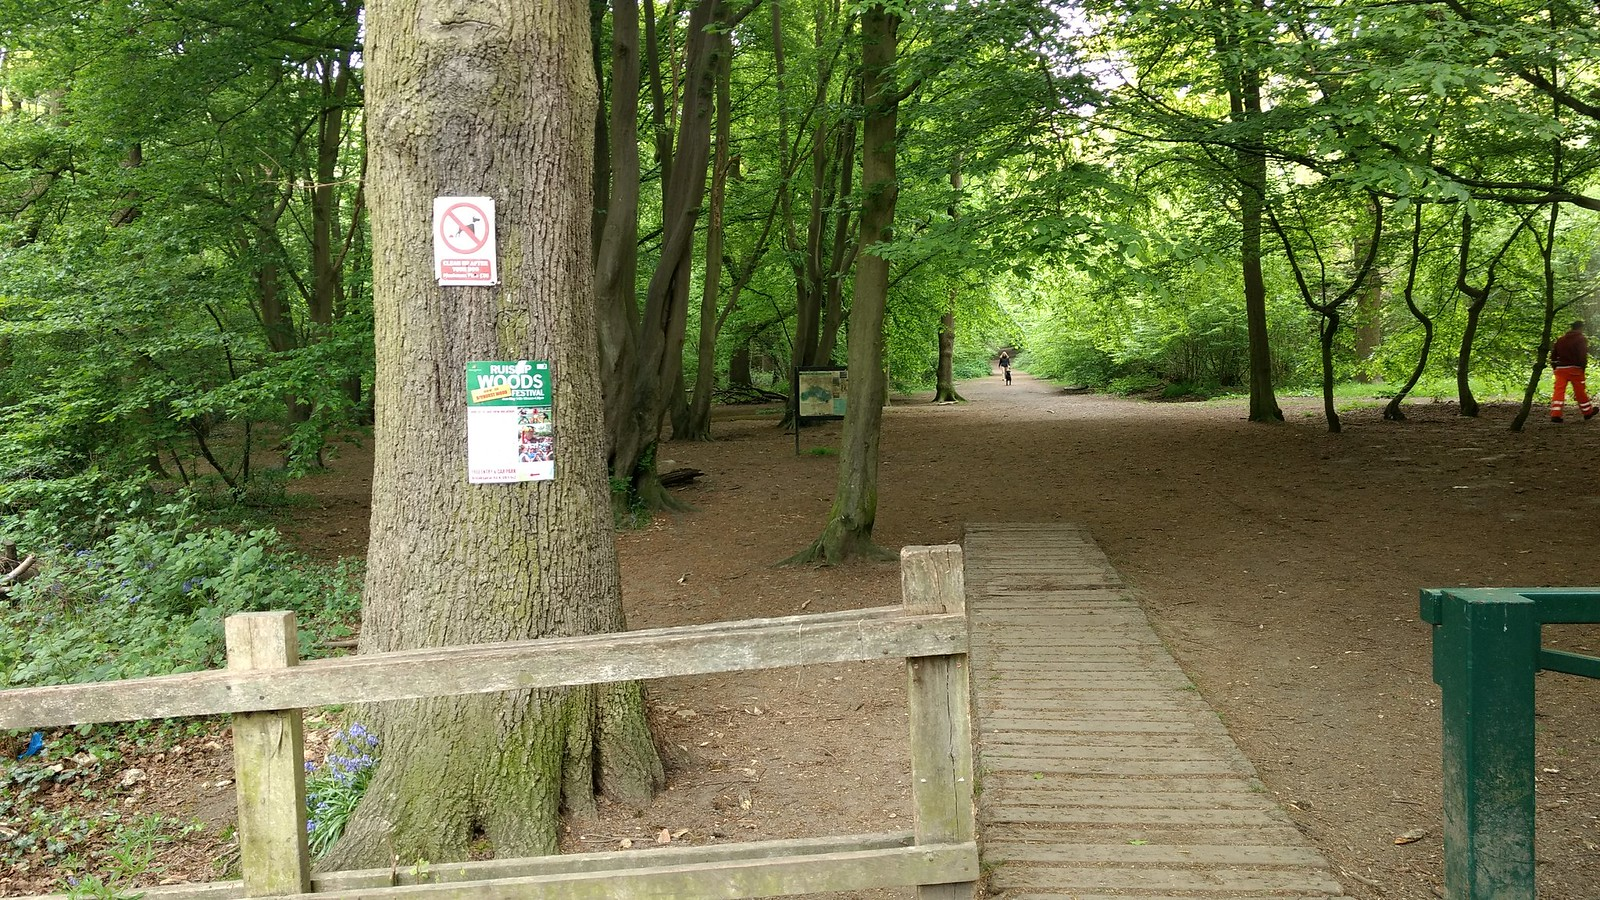 Entrance to Ruislip Woods